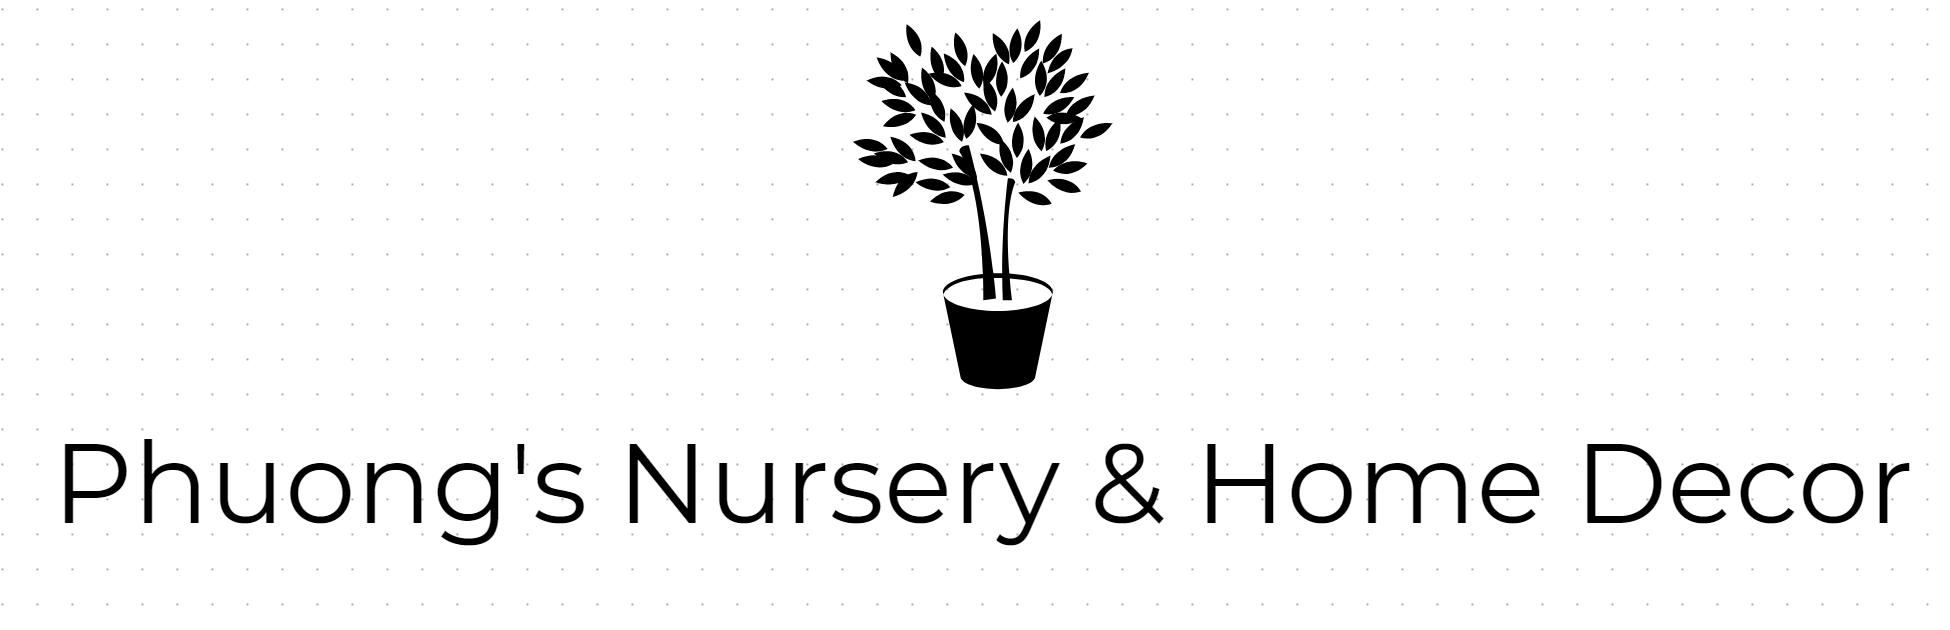 Phuong's Nursery & Home Decor